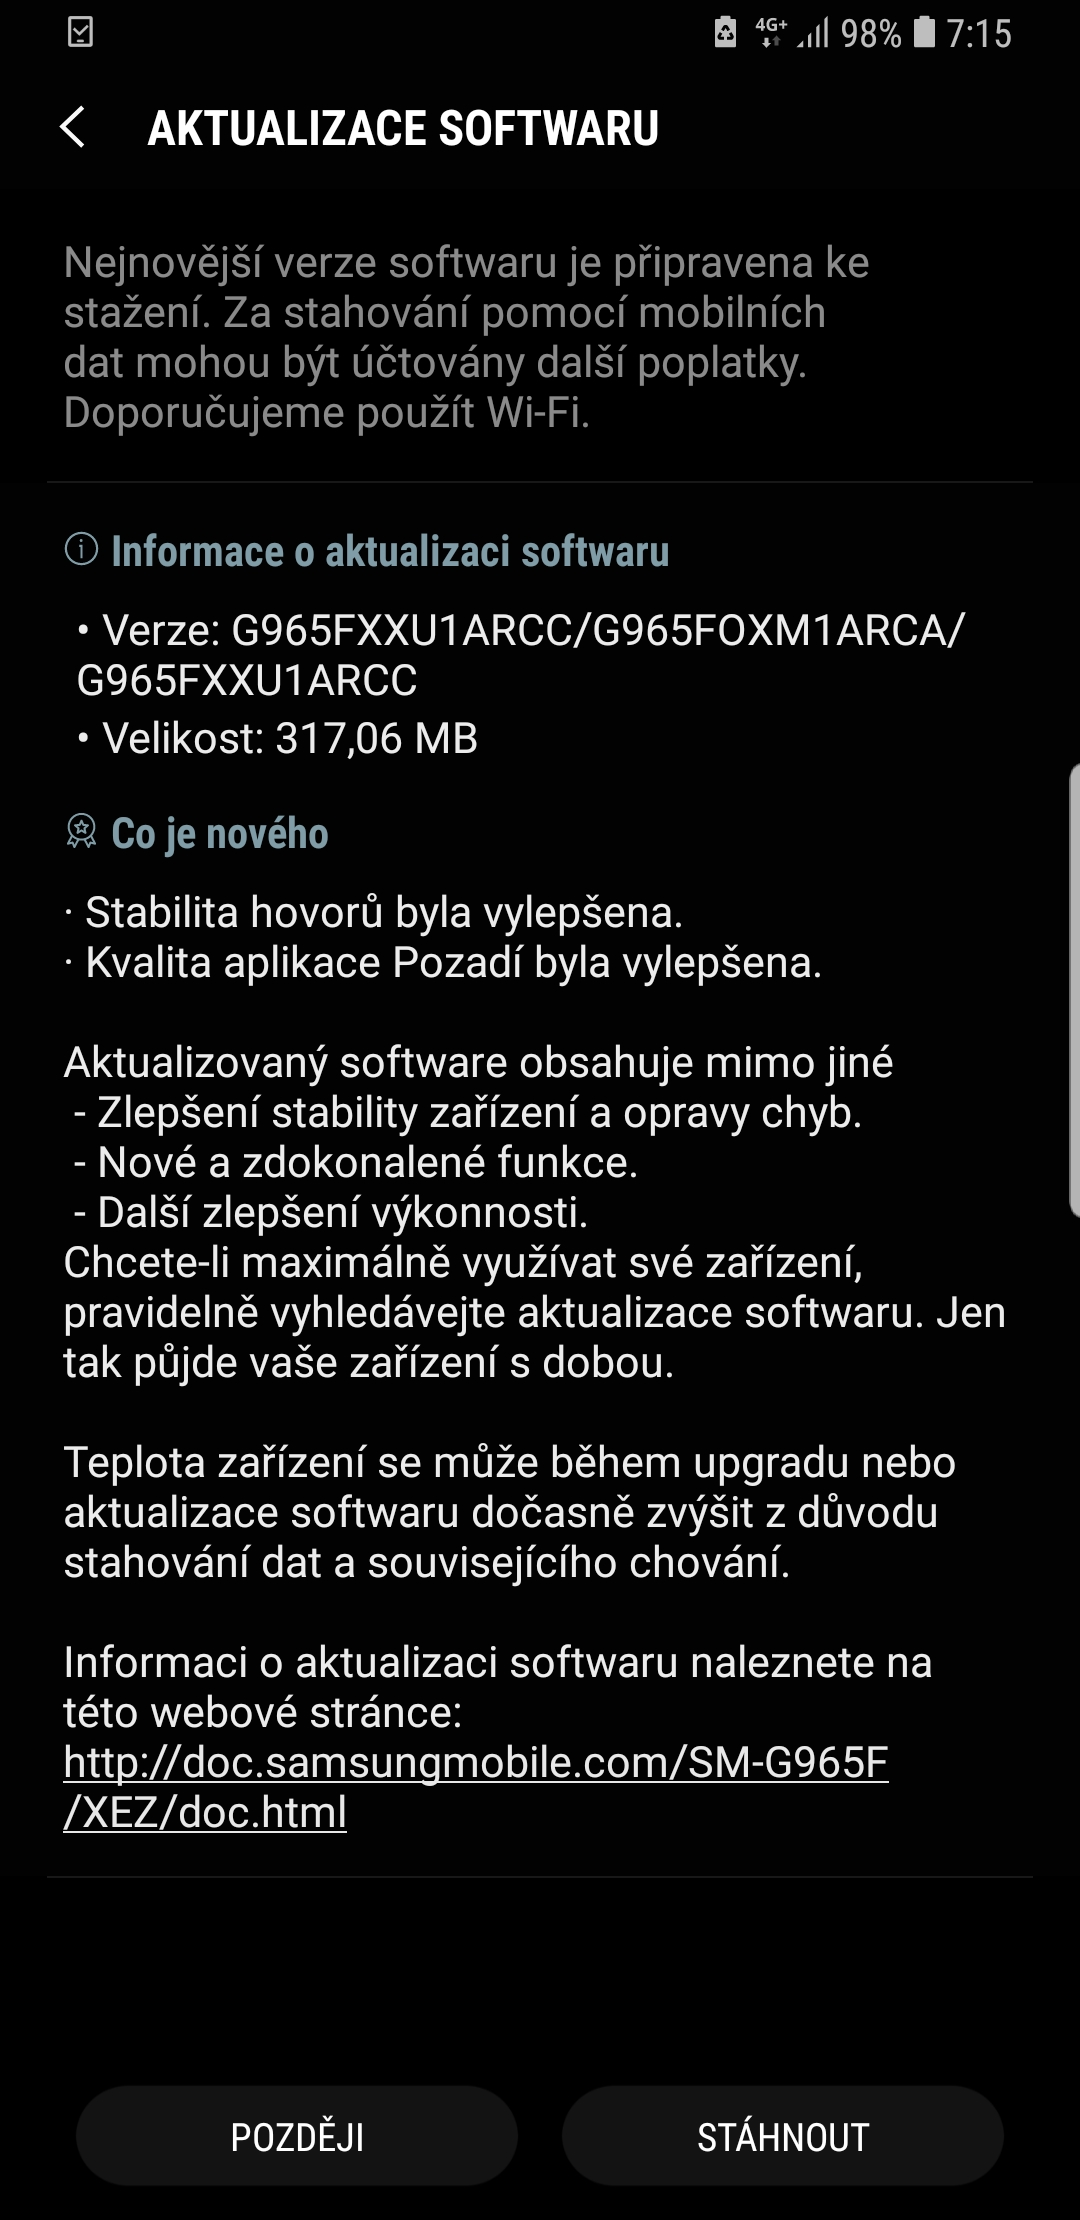 Screenshot_20180404-071504_Software update.jpg